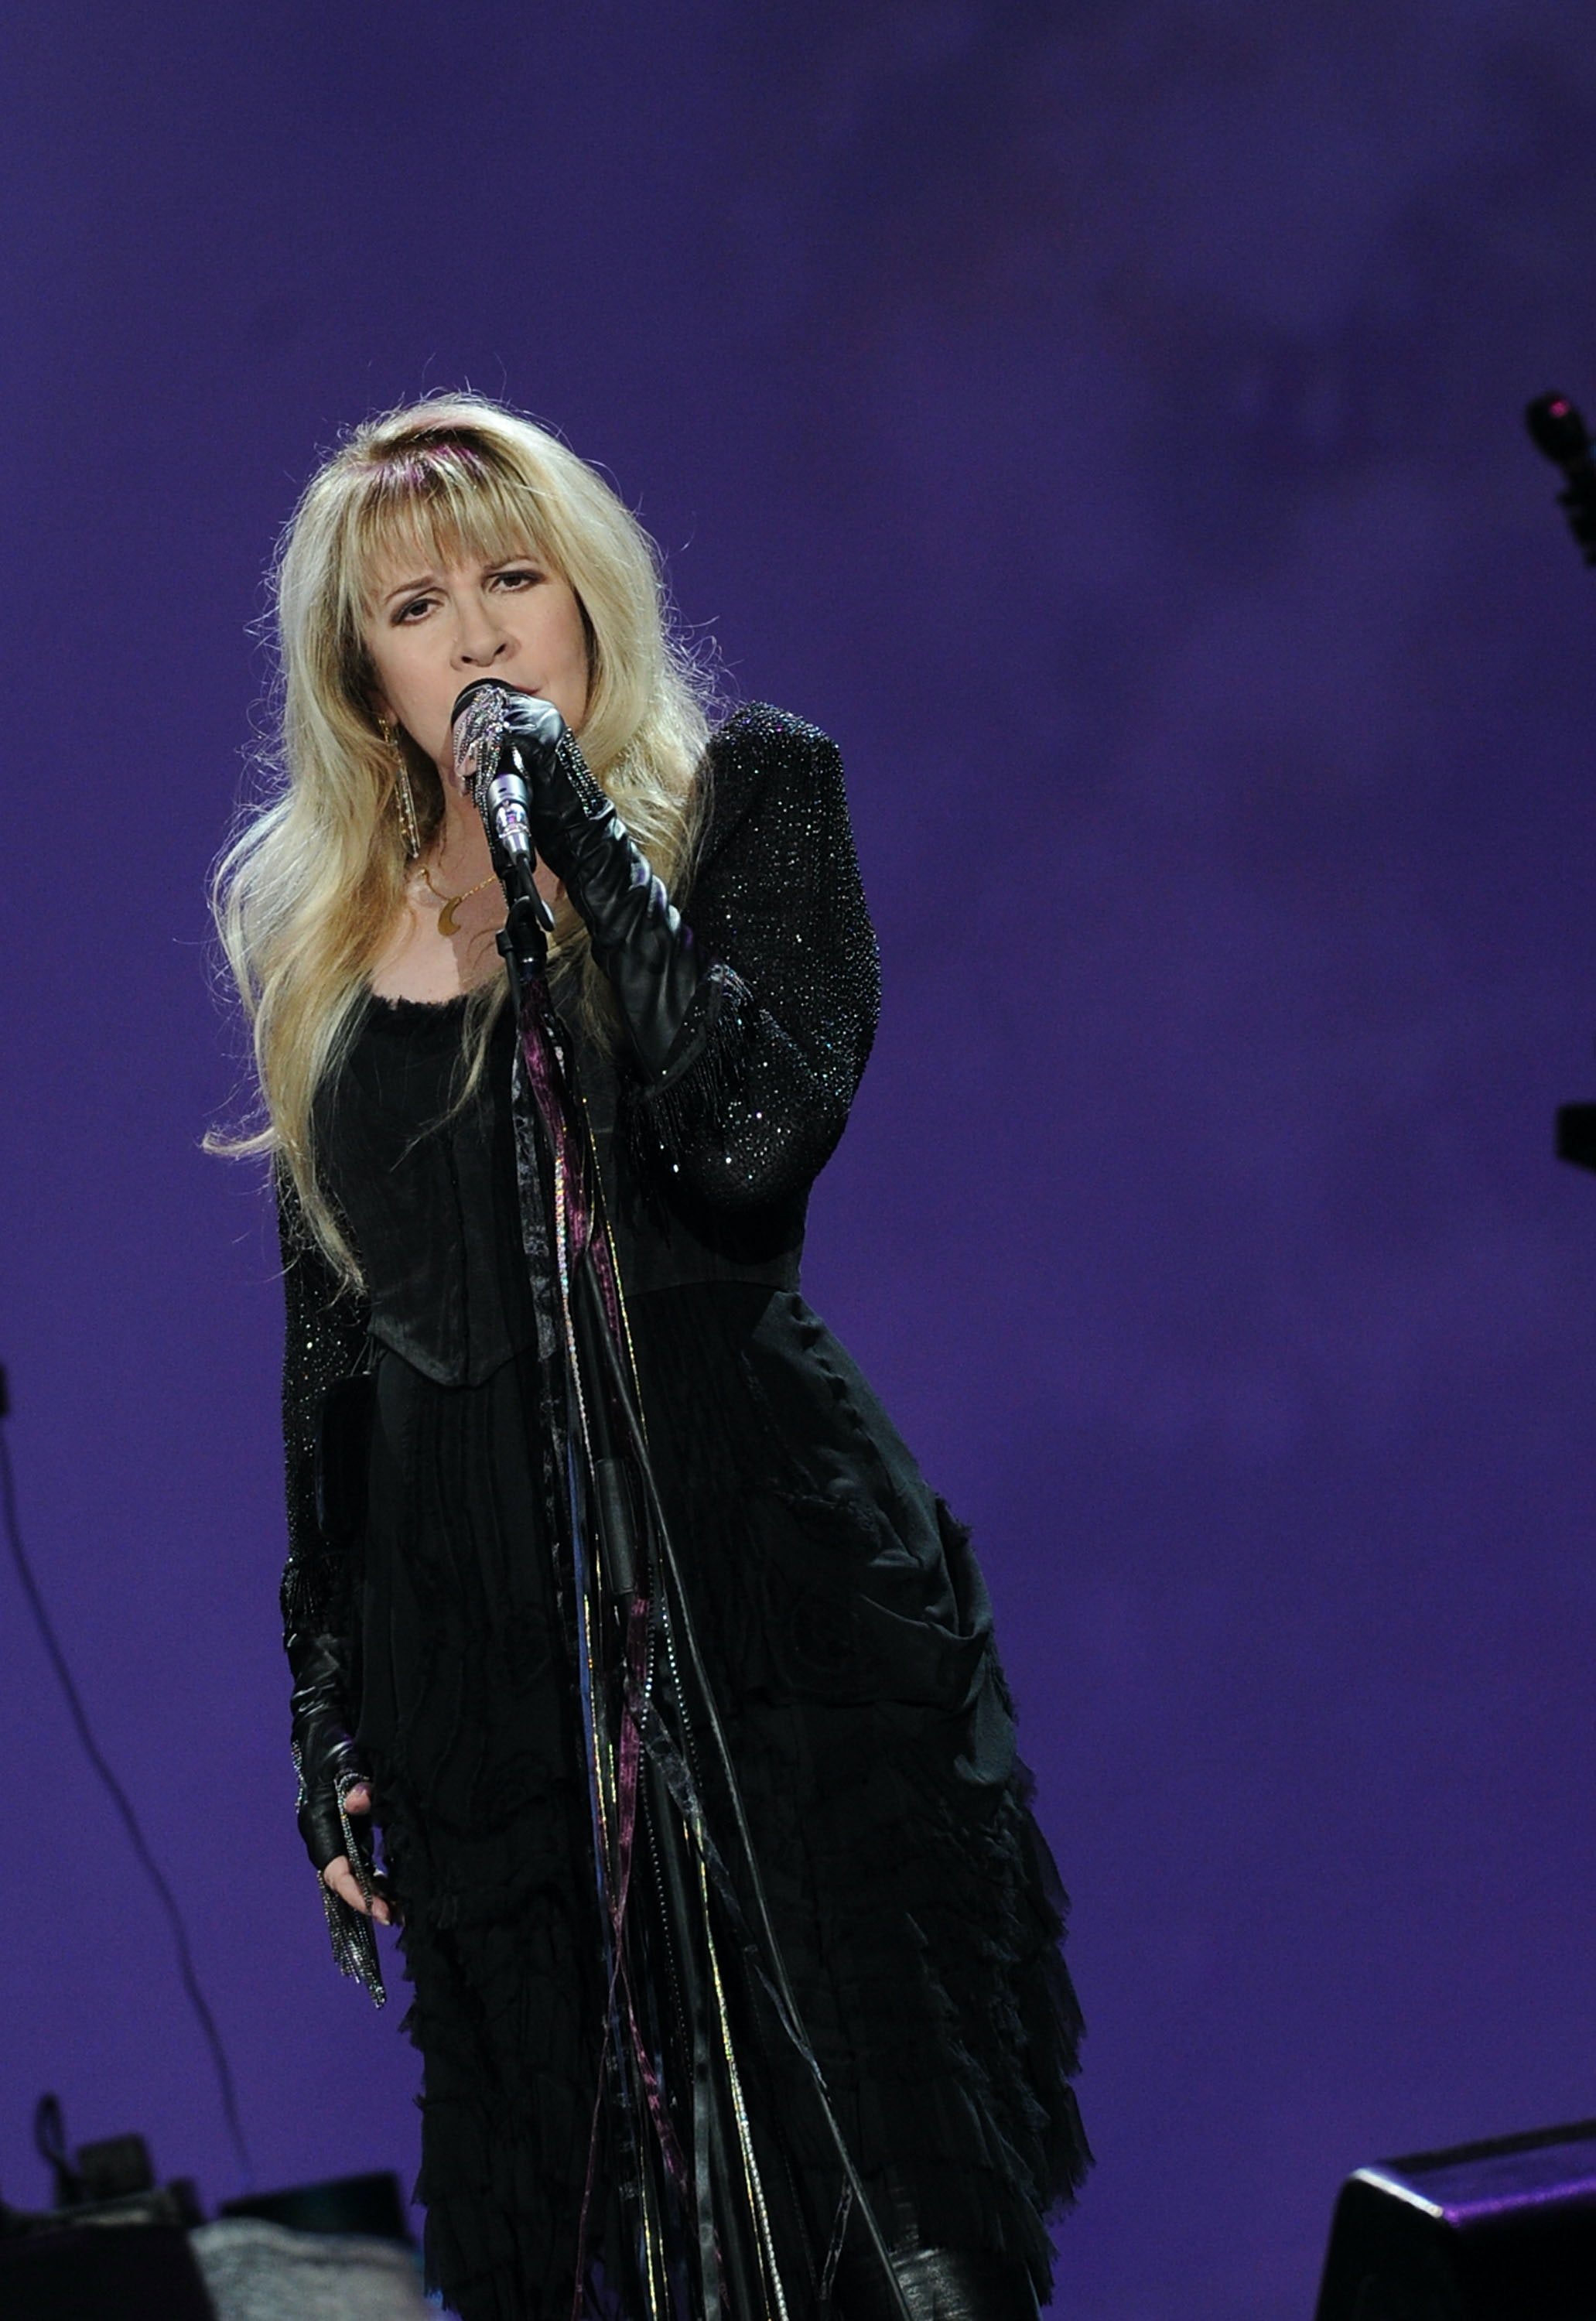 Dresses Black of stevie nicks pictures forecast to wear for summer in 2019